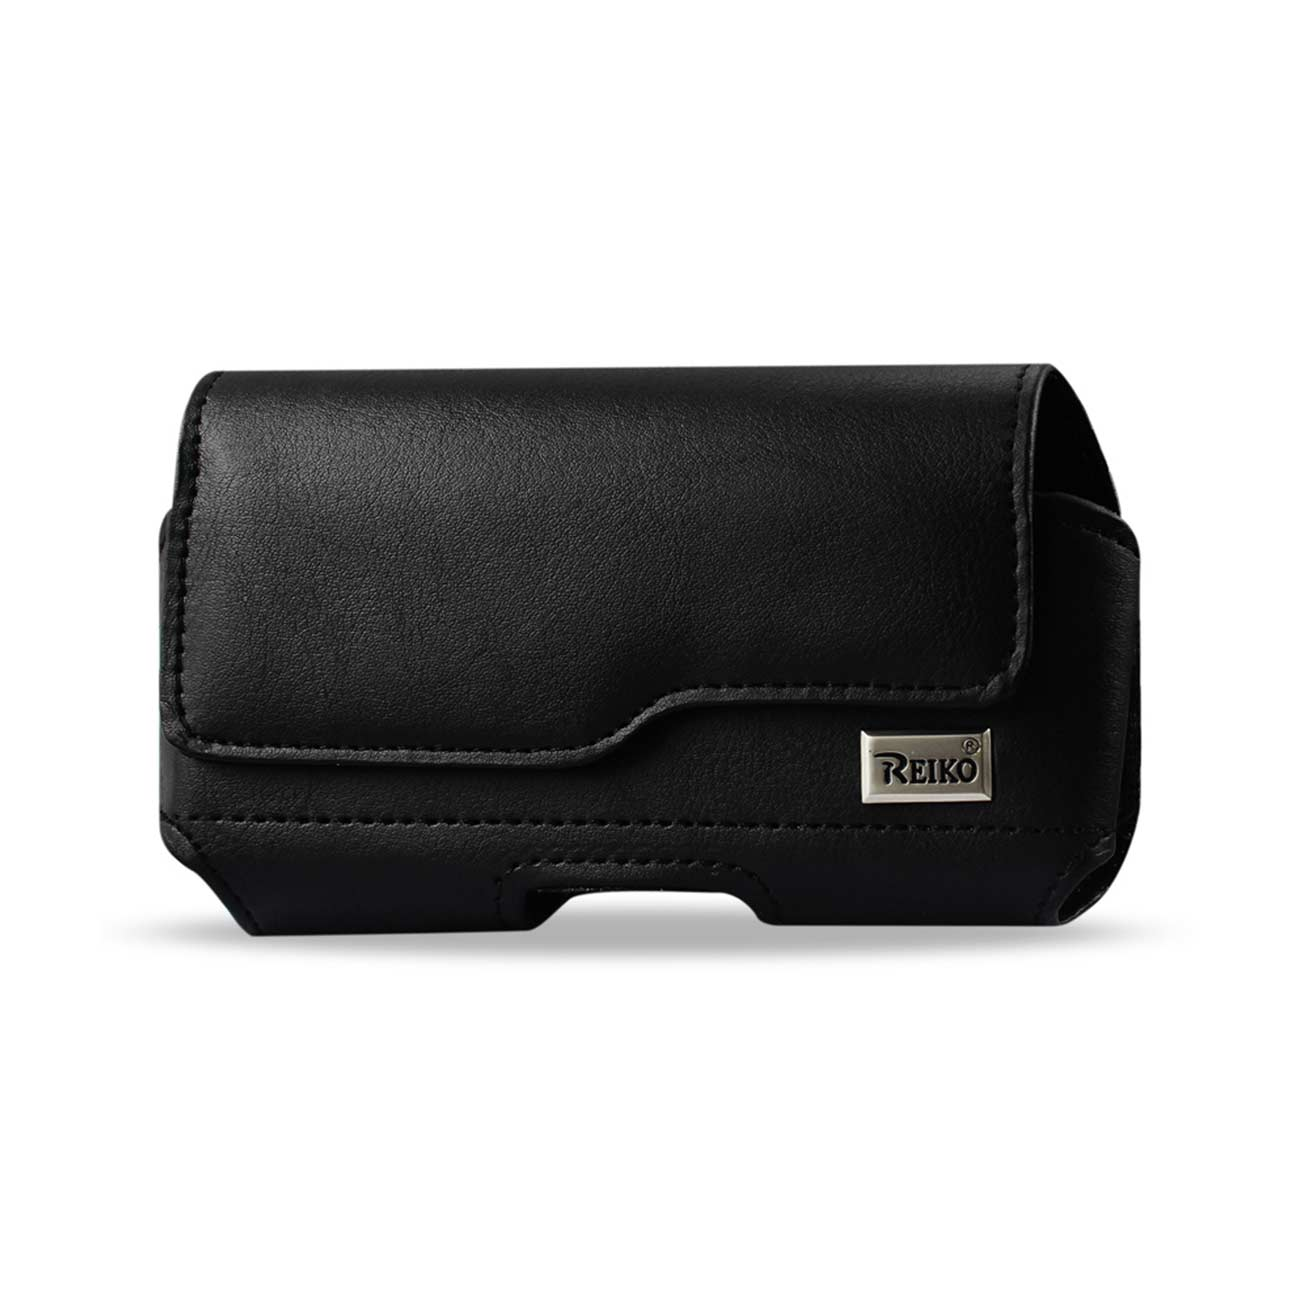 Horizontal Leather Pouch With Z Lid Pattern With Embossed Logo In Black (6.6X3.5X0.7 Inches)